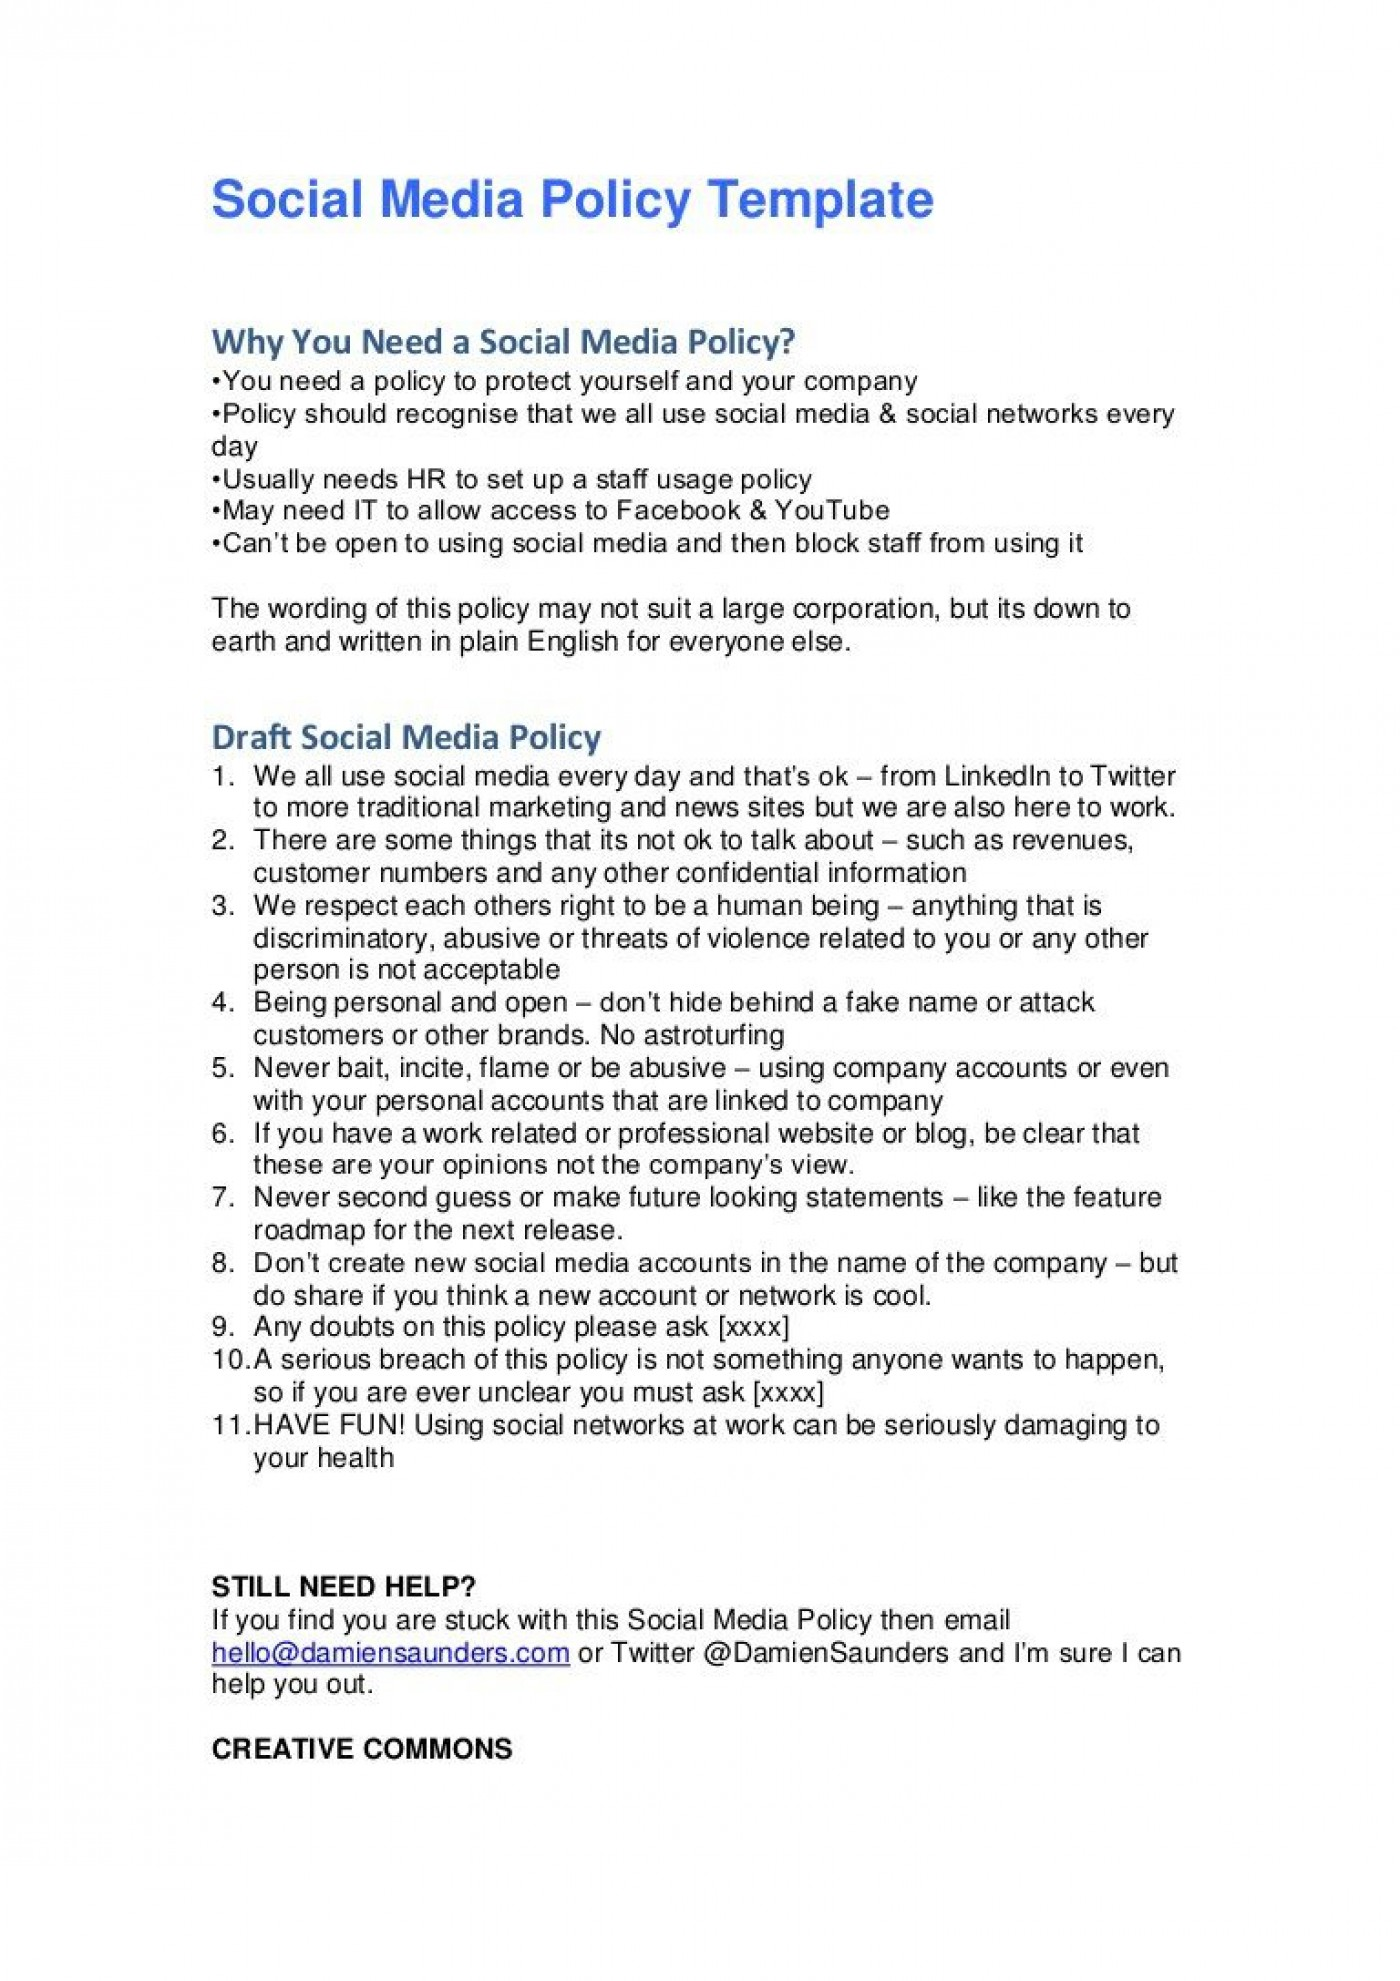 008 Simple Social Media Policie Template Example  Policy Australia For Small Busines1400